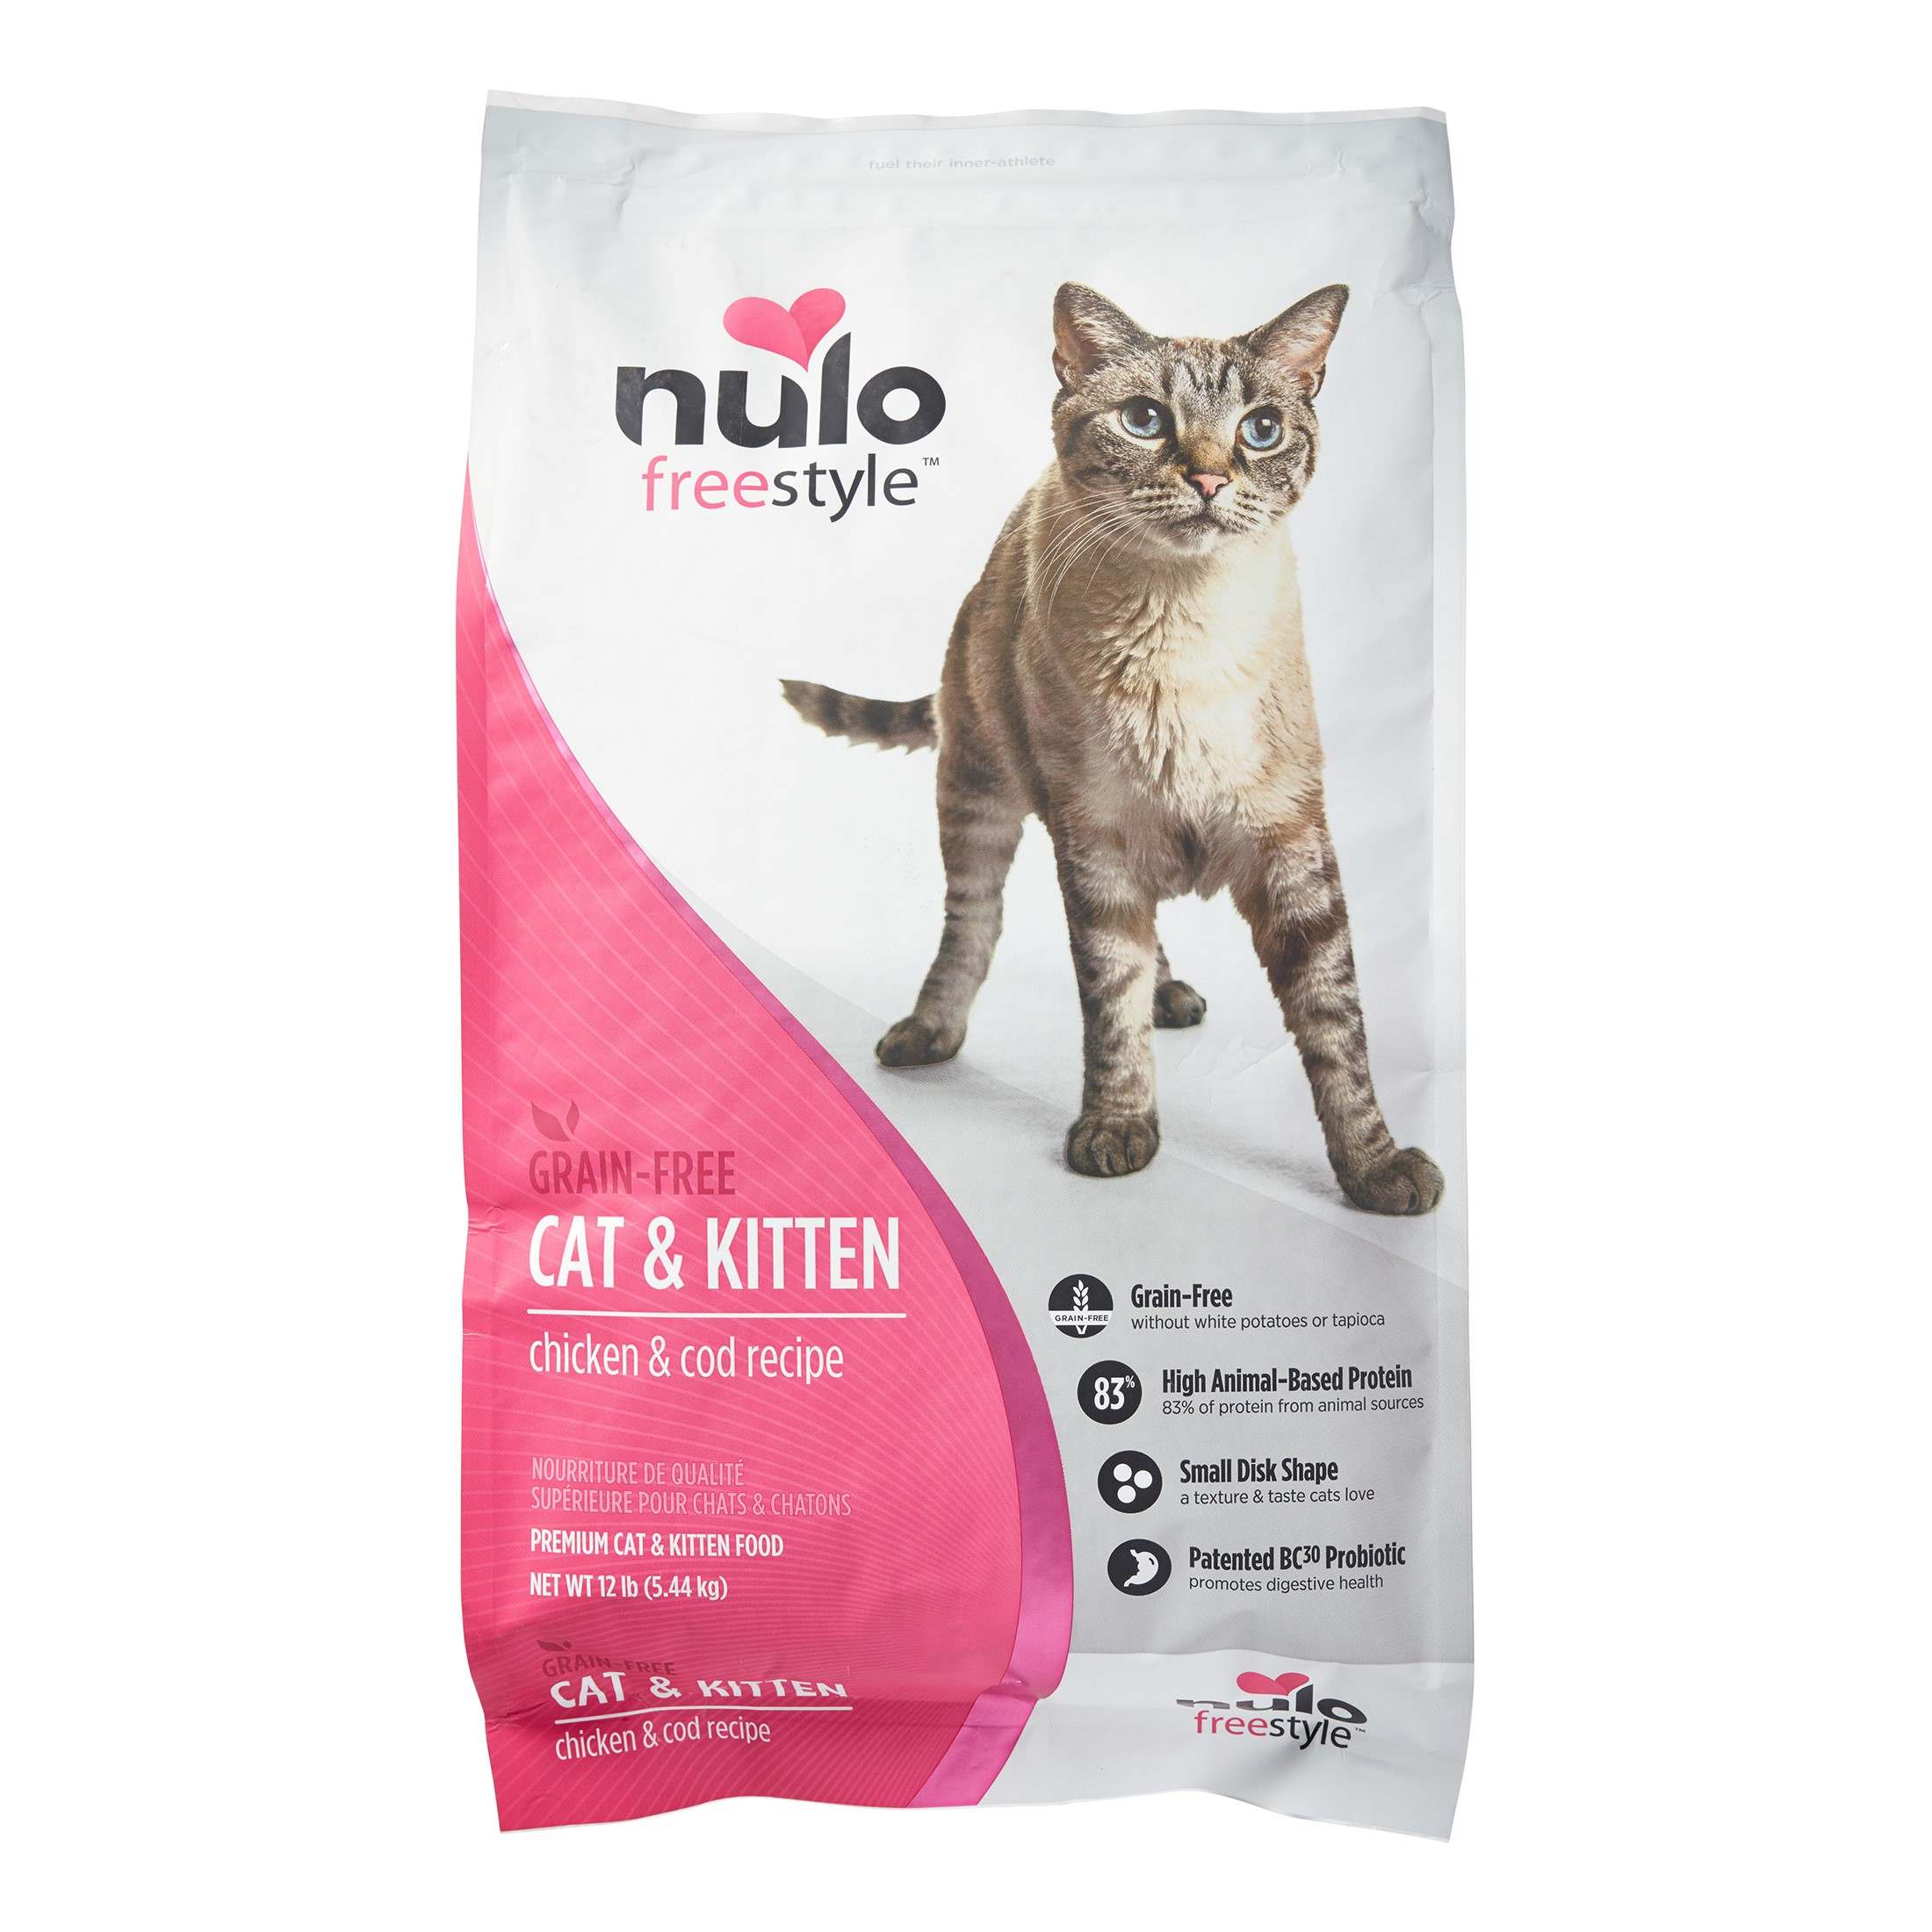 Nulo Freestyle Grain-Free Chicken & Cod Dry Cat Food, 12 Lb